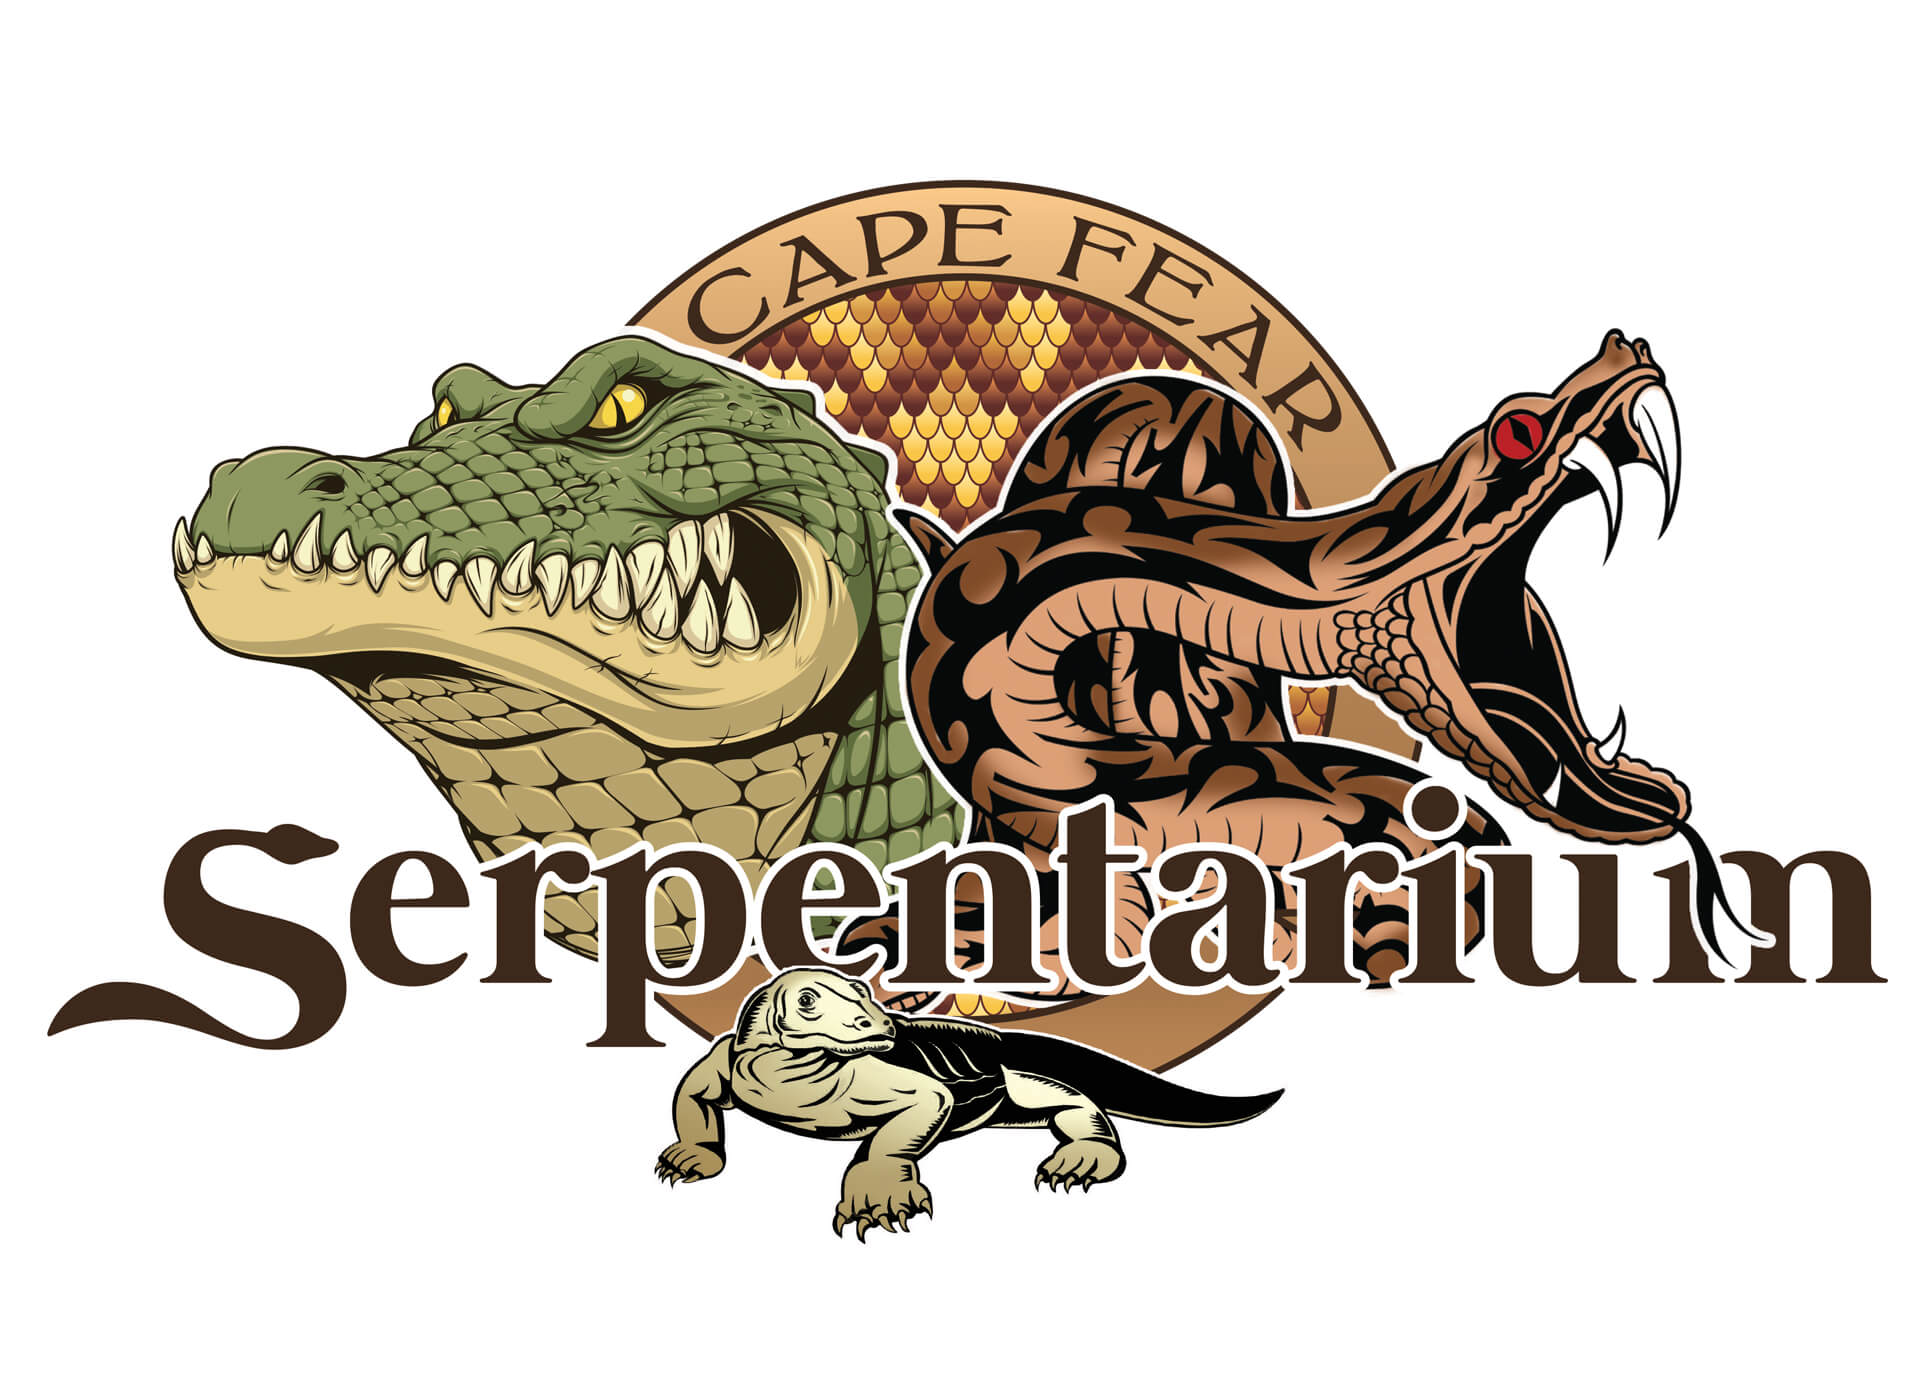 Cape Fear Serpentarium Logo